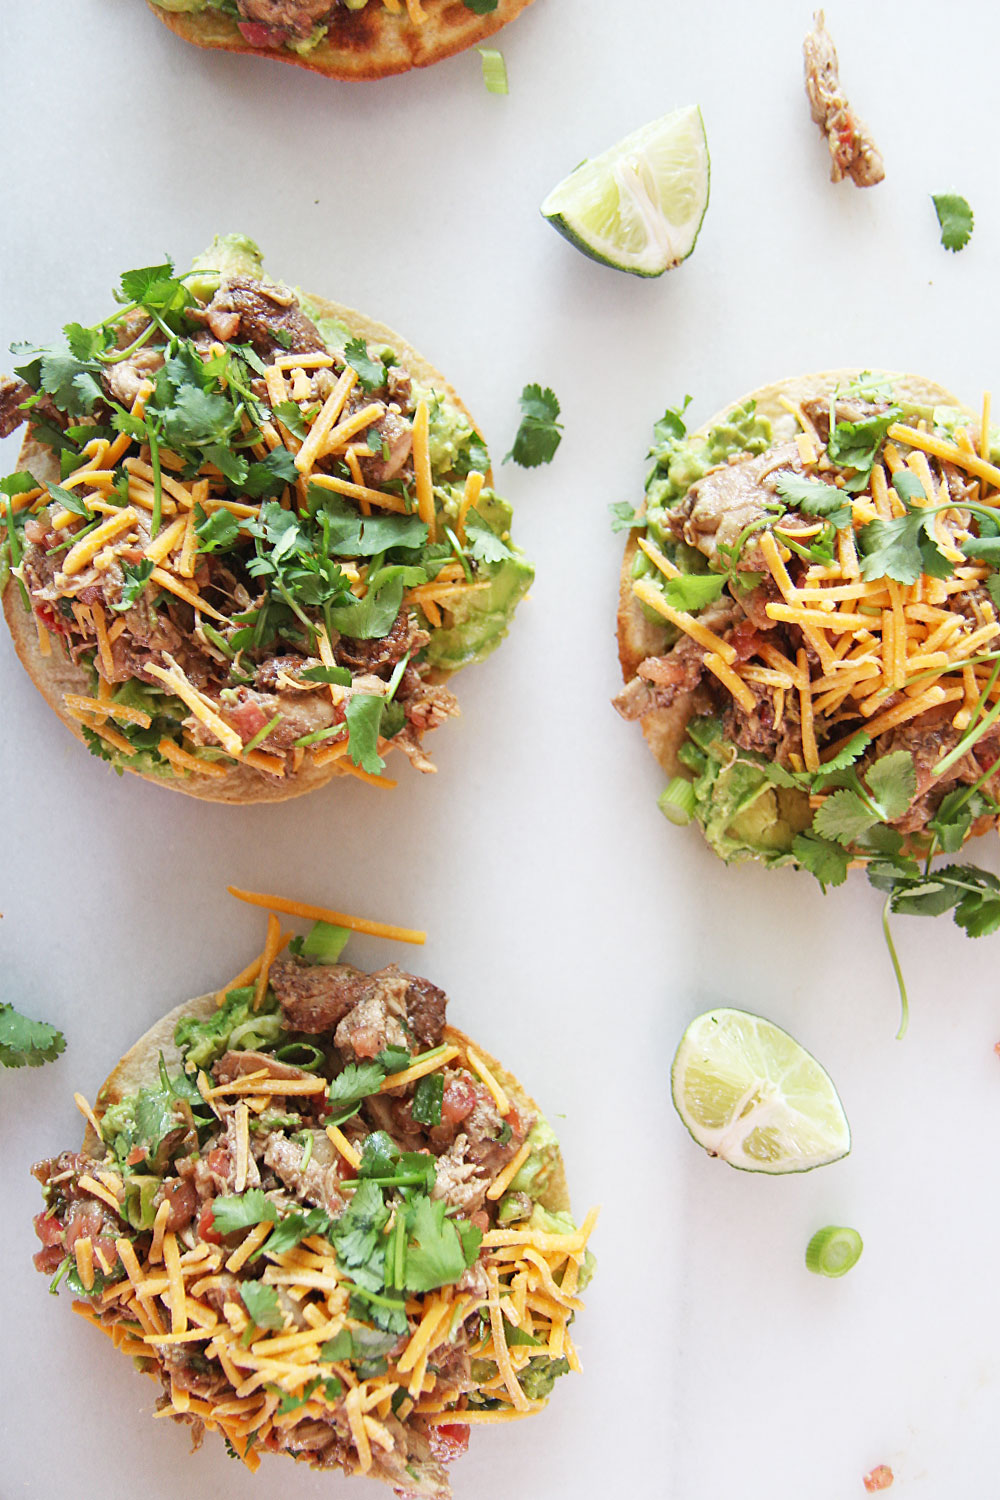 15 Minute Salsa Chicken Tostada Recipe. Grab your corn tortilla, rotisserie chicken, salsa, avocado, and cheese. This is baked in the oven and fast weeknight smiles. Happy Cooking! www.ChopHappy.com #chickenrecipe #tostada